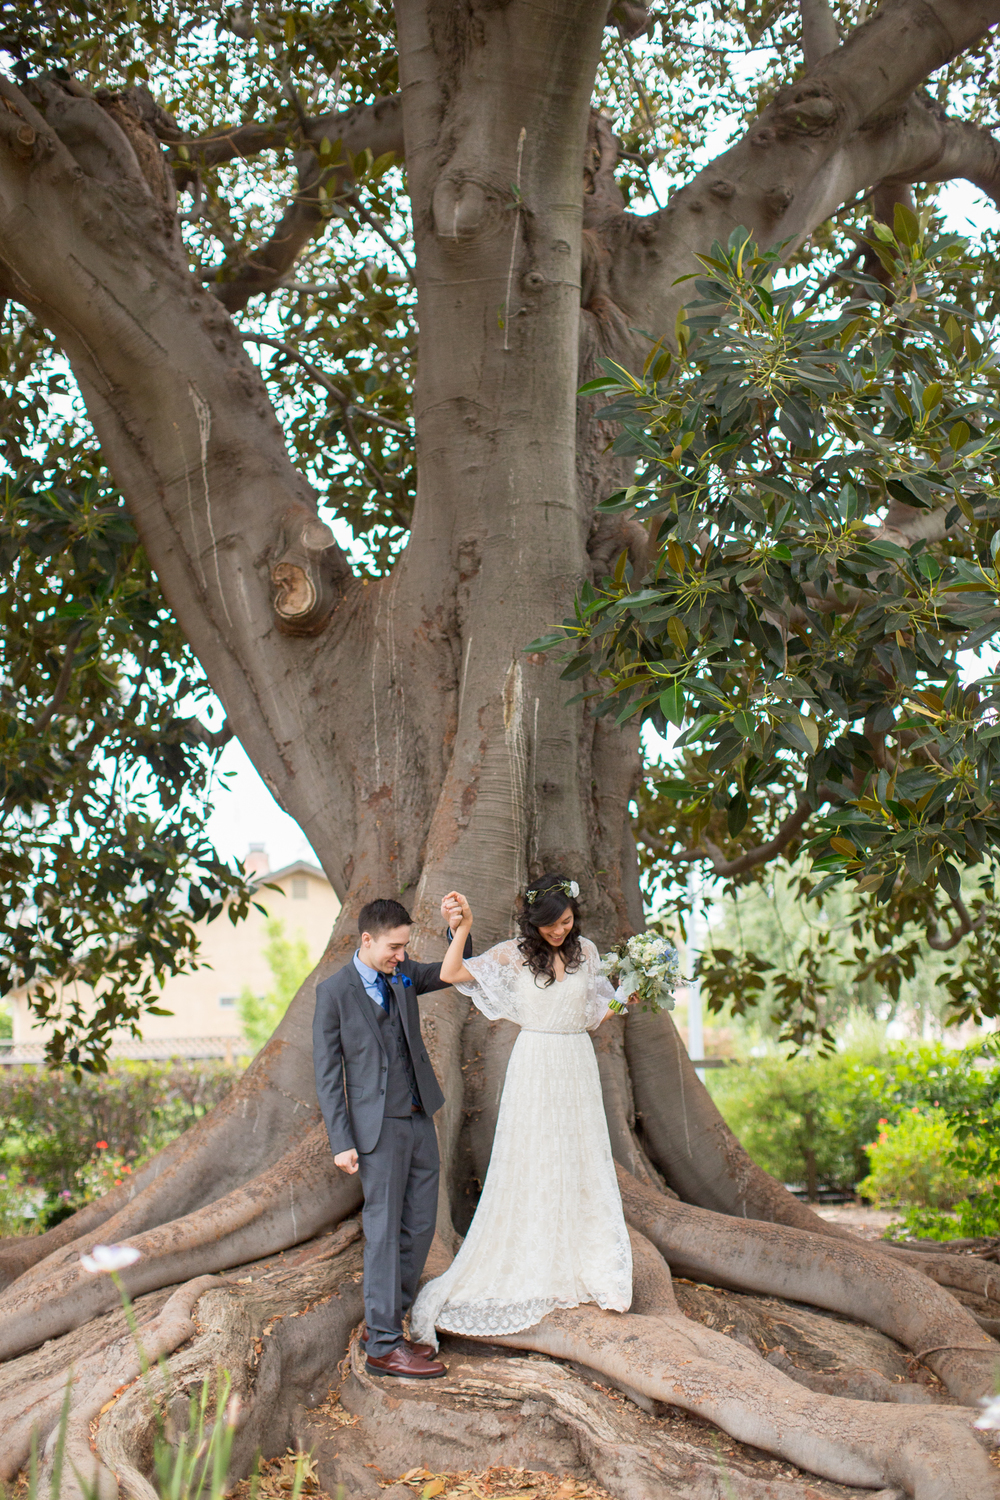 Chico California Wedding and Engagement Photography by TréCreative - Fremont Wedding Photography (106 of 261).jpg